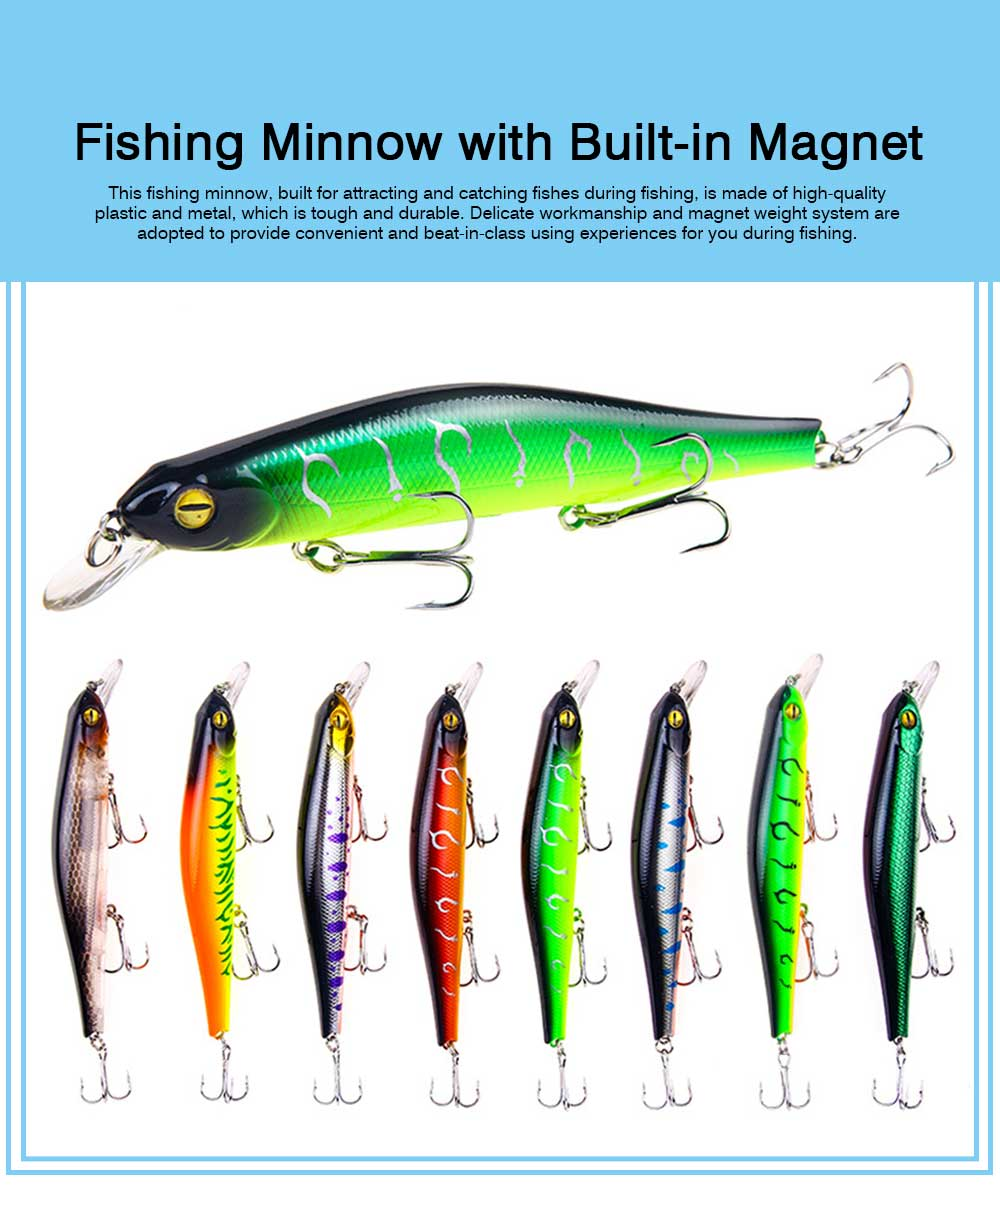 Artificial Fishing Lures Bait Tackle with Magnet Weight System, Delicate Mock Fish Model Minnow Crank Bait Bass 6